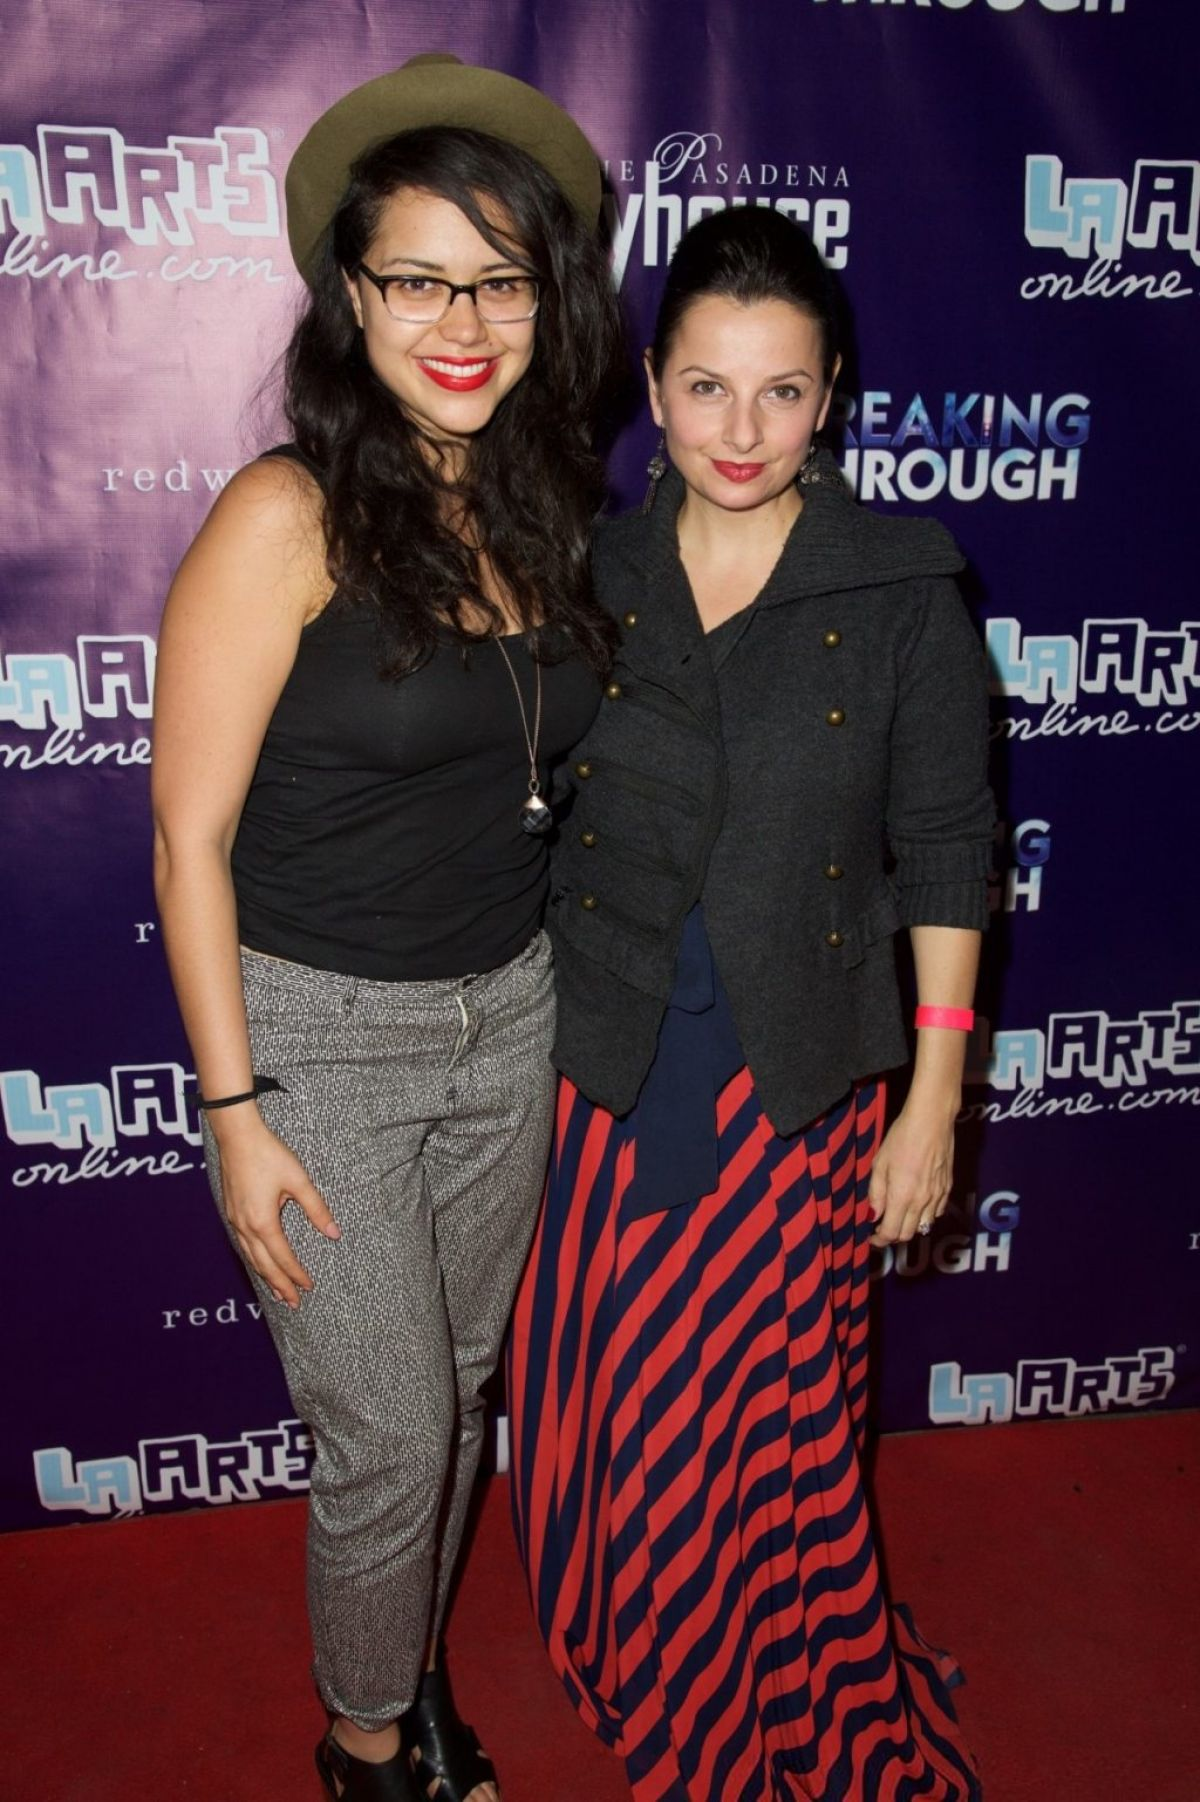 ALYSSA DIAZ at Breaking Trough  Opening Night at Pasadena Playhouse 11/01/2015